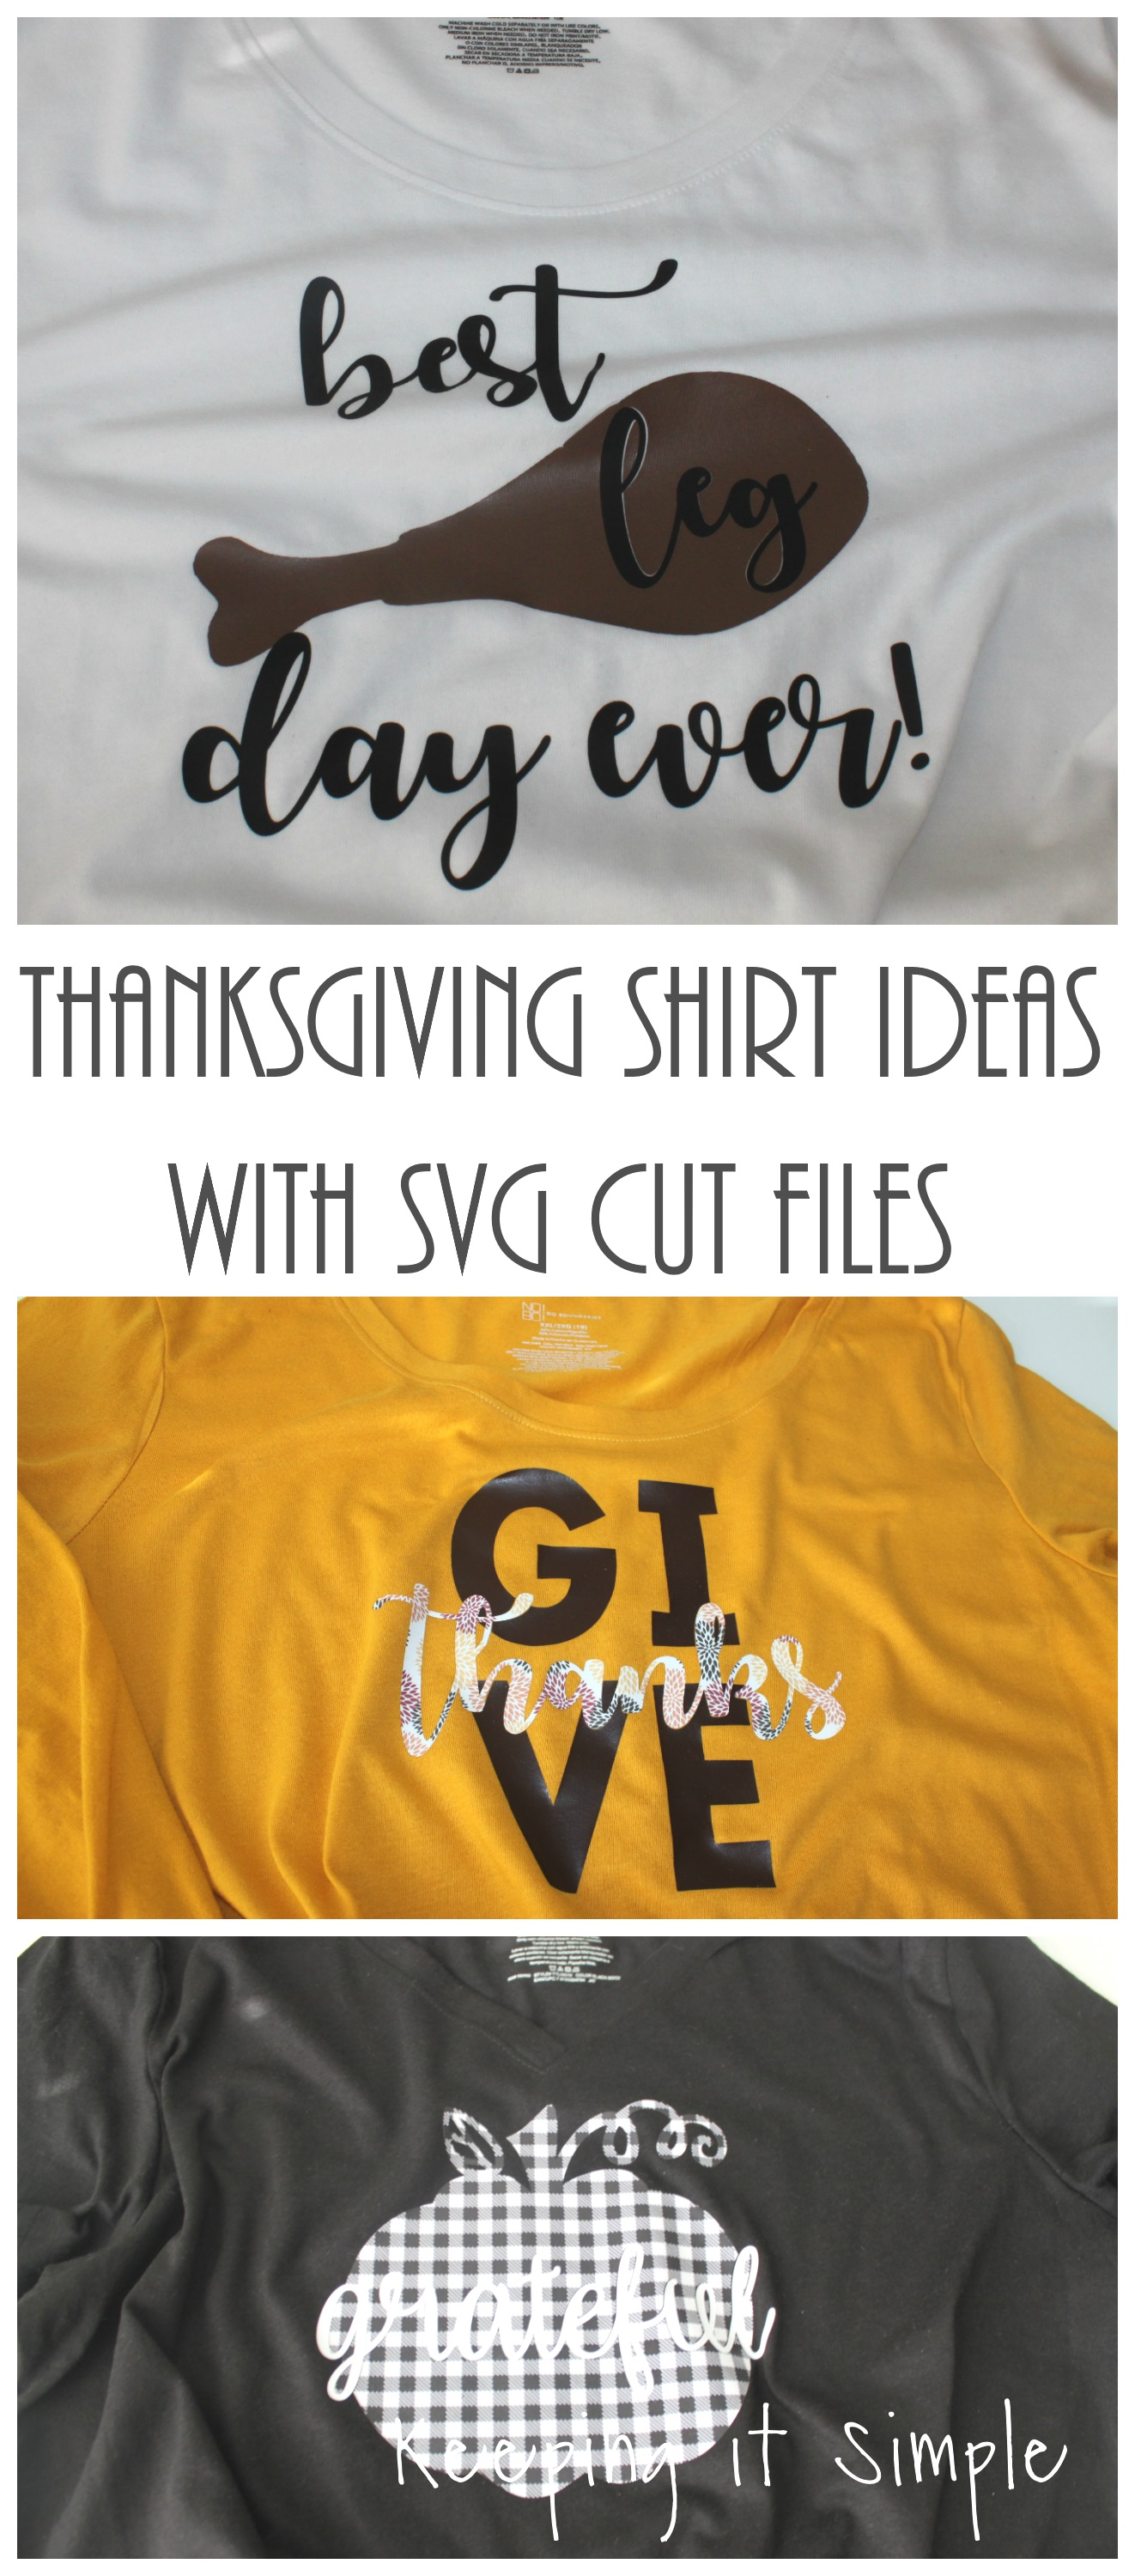 thanksgiving shirt ideas with svg cut files keeping it simple